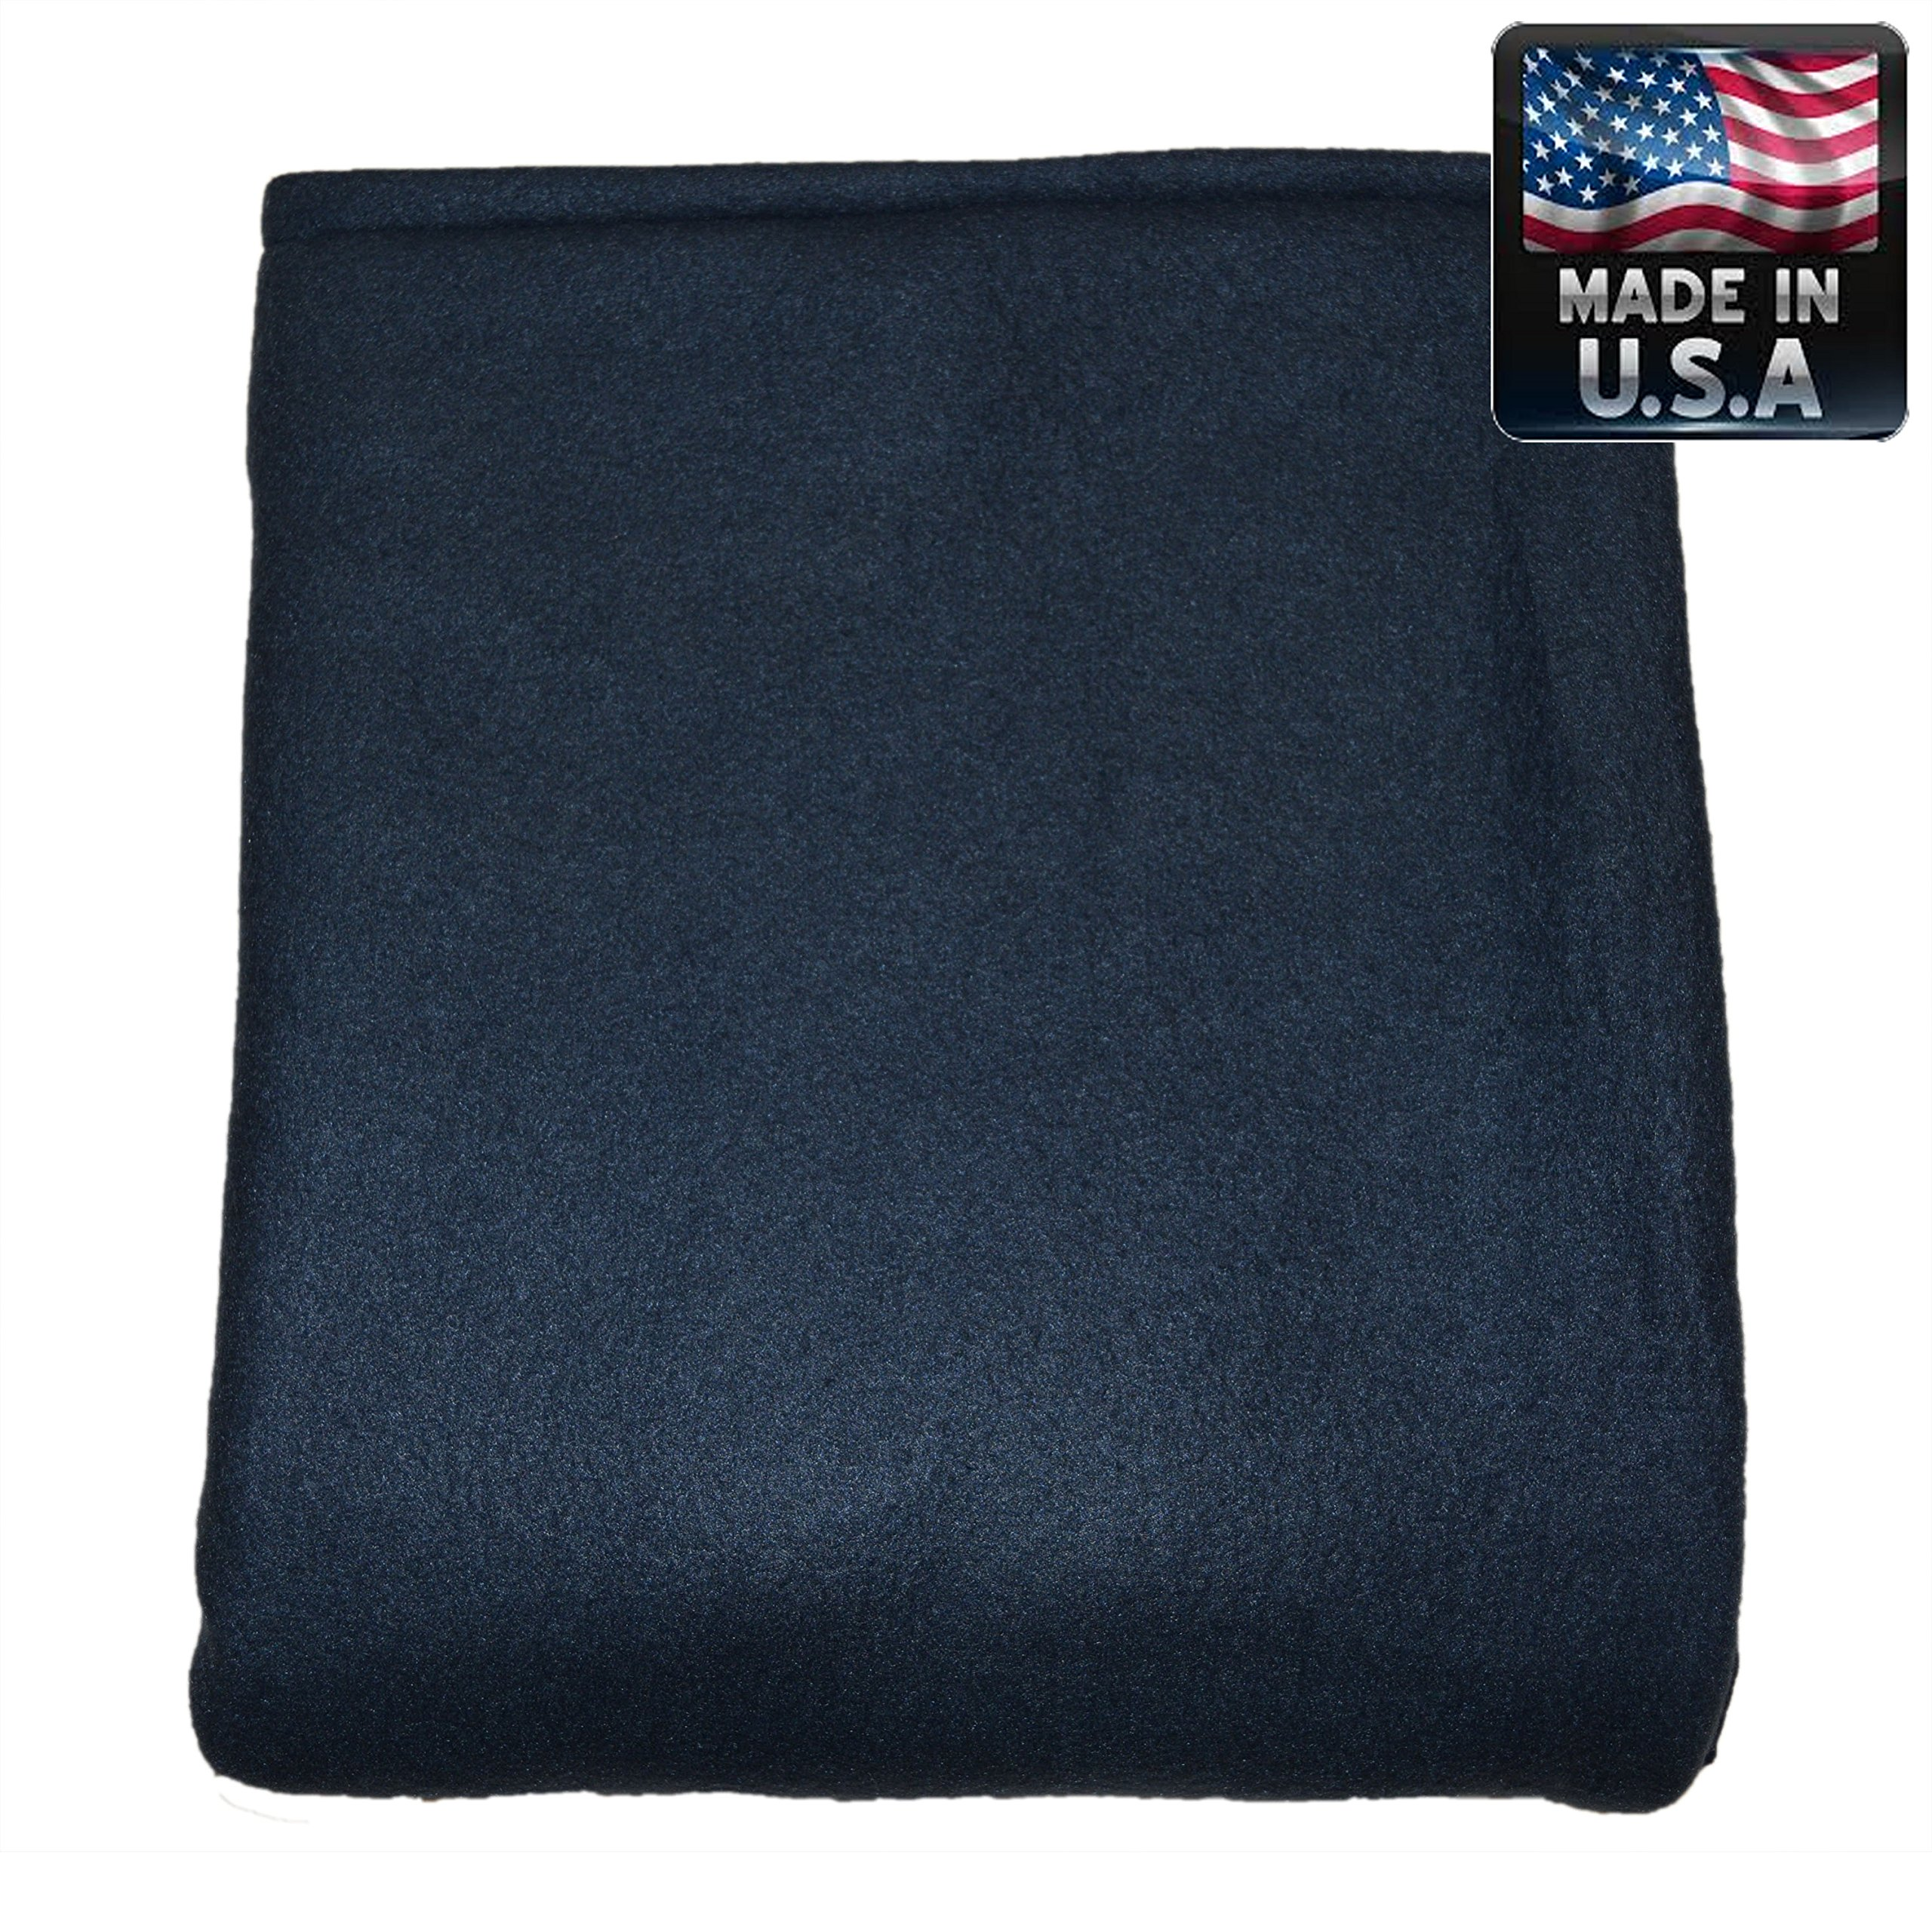 Melissa's Weighted Blankets 25lbs Adult Size NAVY Great for Insomnia, Anxiety relief, Autism, Aspergers, SPD, ADHD, and PTSD. Overall stress reliever! Extra Large 80x58'' size